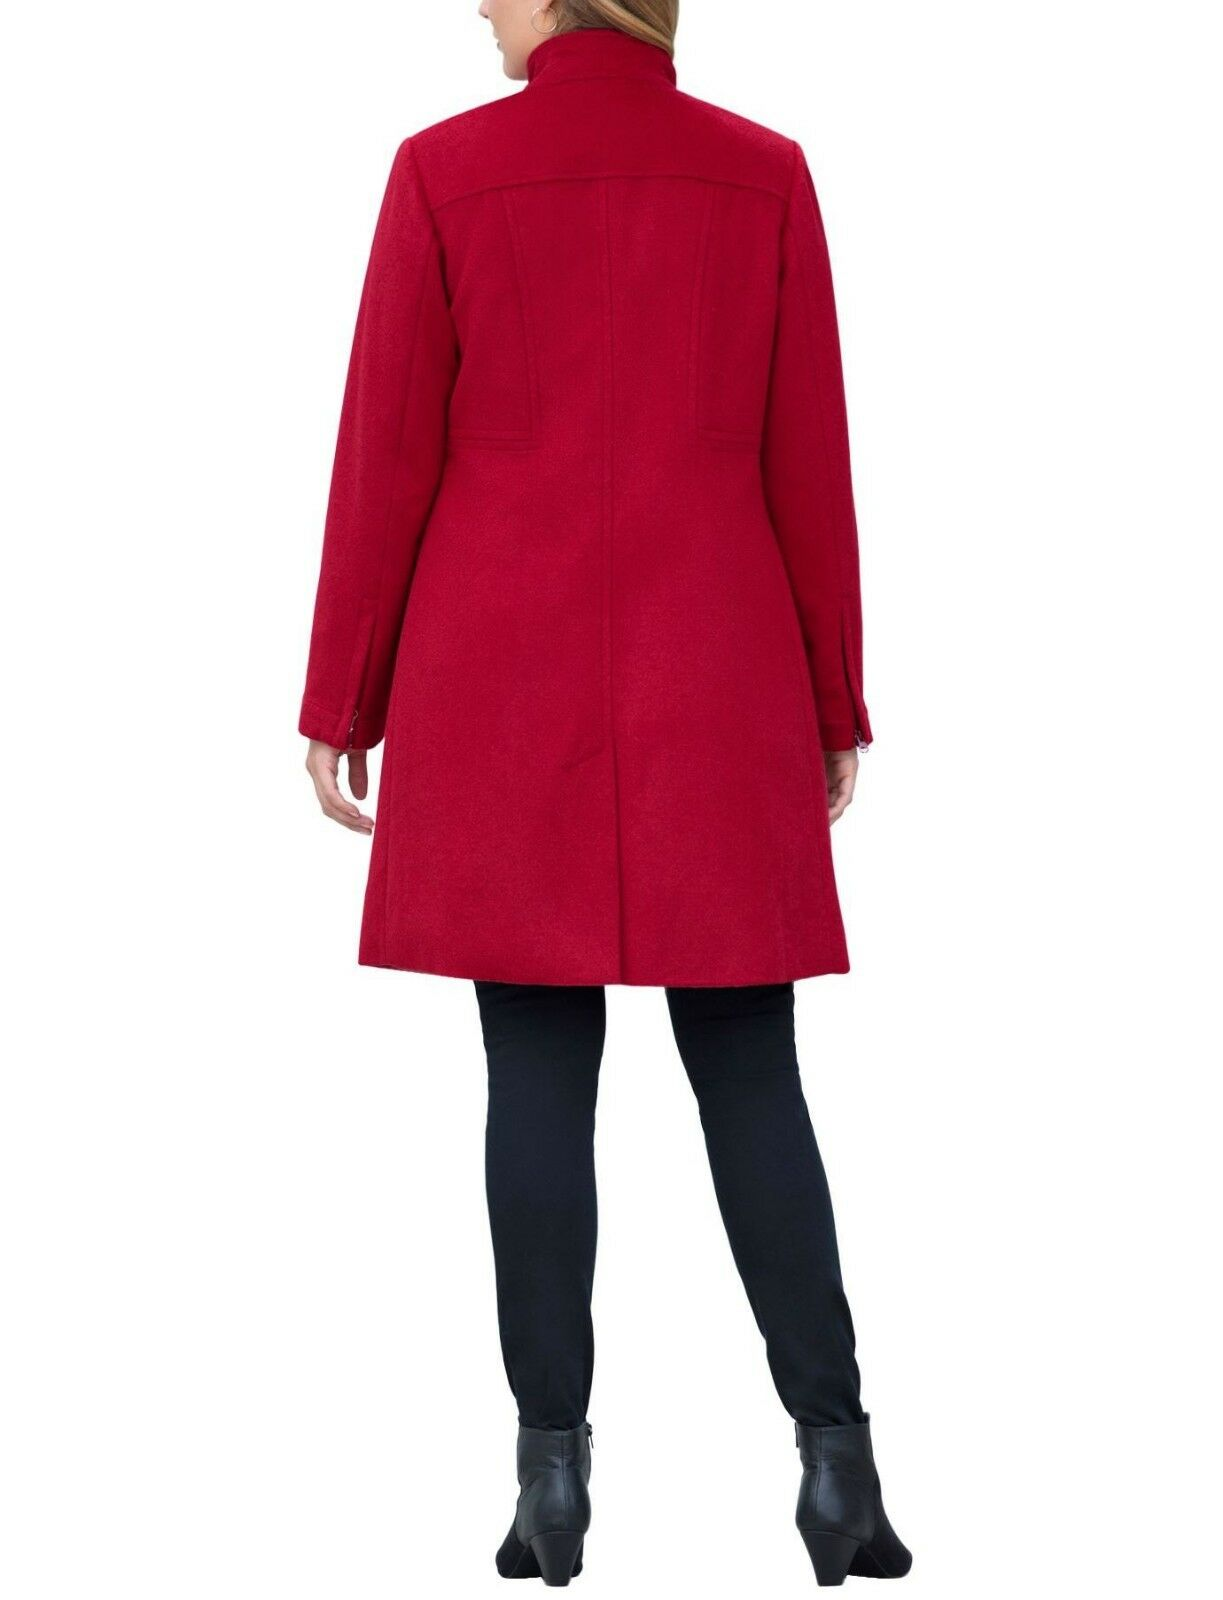 6de76877613 ... Jessica London Plus Size Classic Red Long Long Long Sleeves Wool-Blend  Shirtcoat Size 24 ...